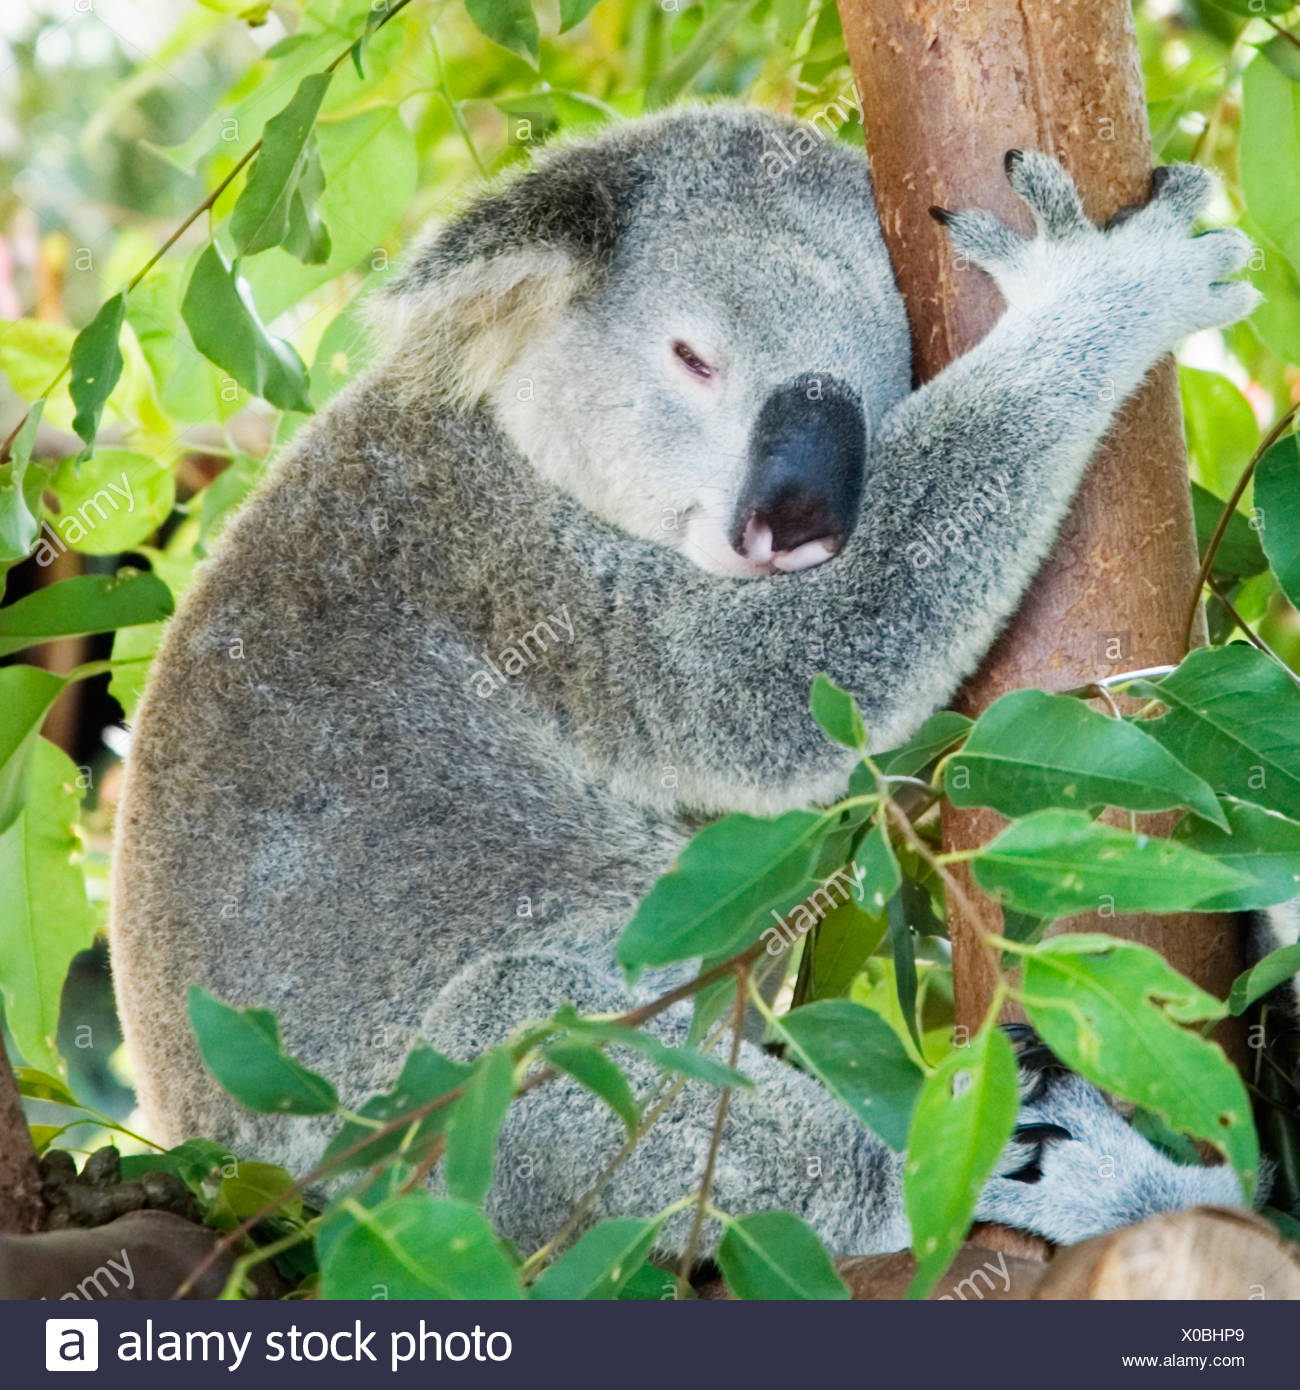 Koala sleeping in eucalypt tree - Stock Image